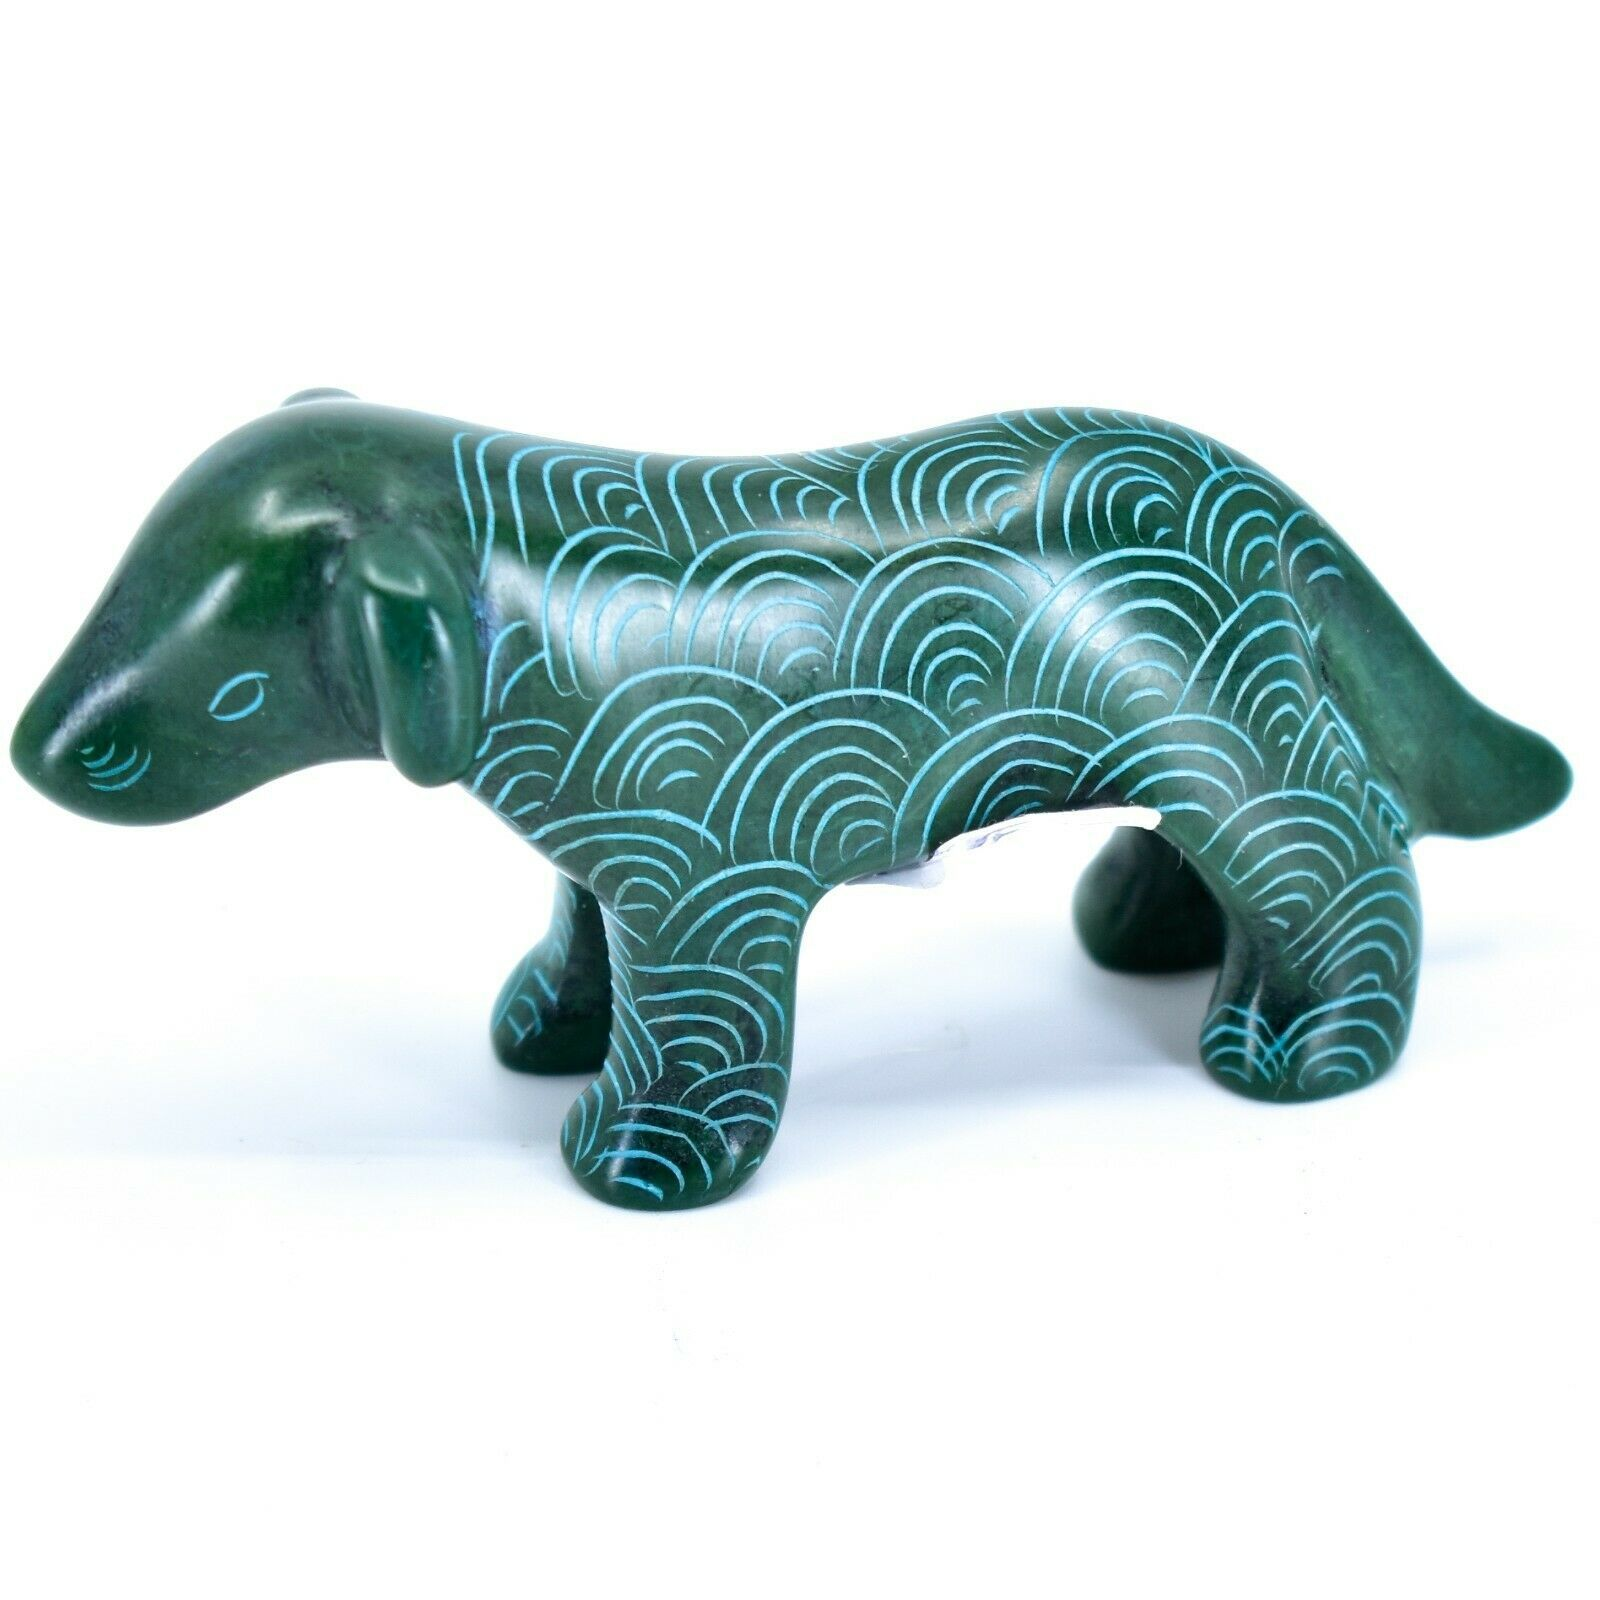 Tabaka Chigware Hand Carved Kisii Soapstone Green Standing Puppy Dog Figure